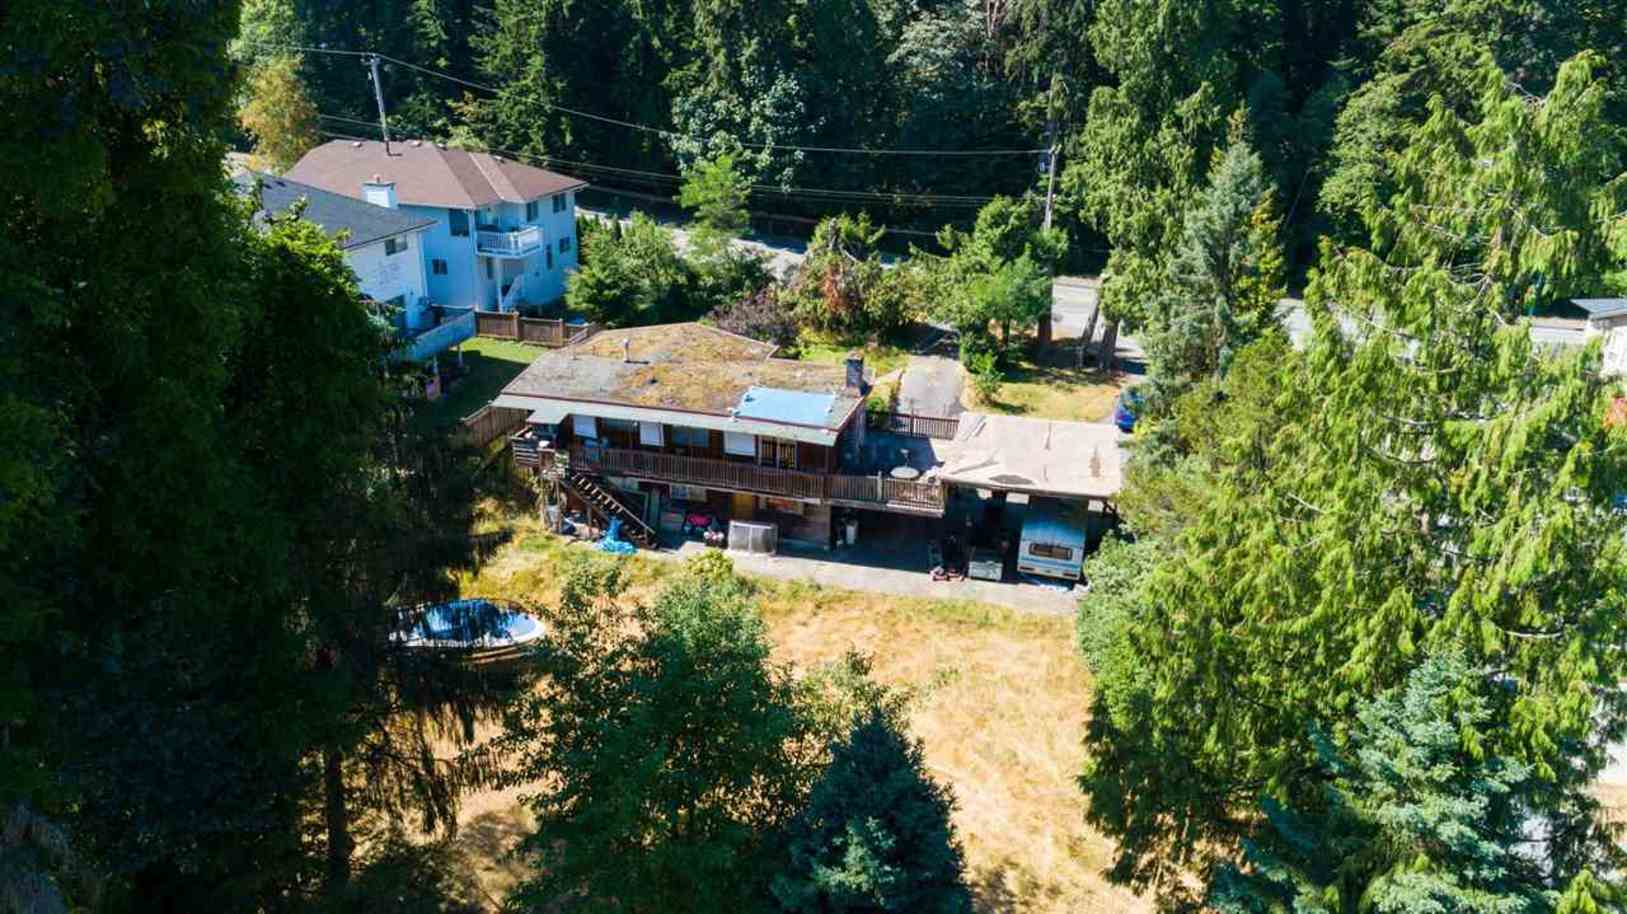 2761-dewdney-trunk-road-ranch-park-coquitlam-03 at 2761 Dewdney Trunk Road, Ranch Park, Coquitlam